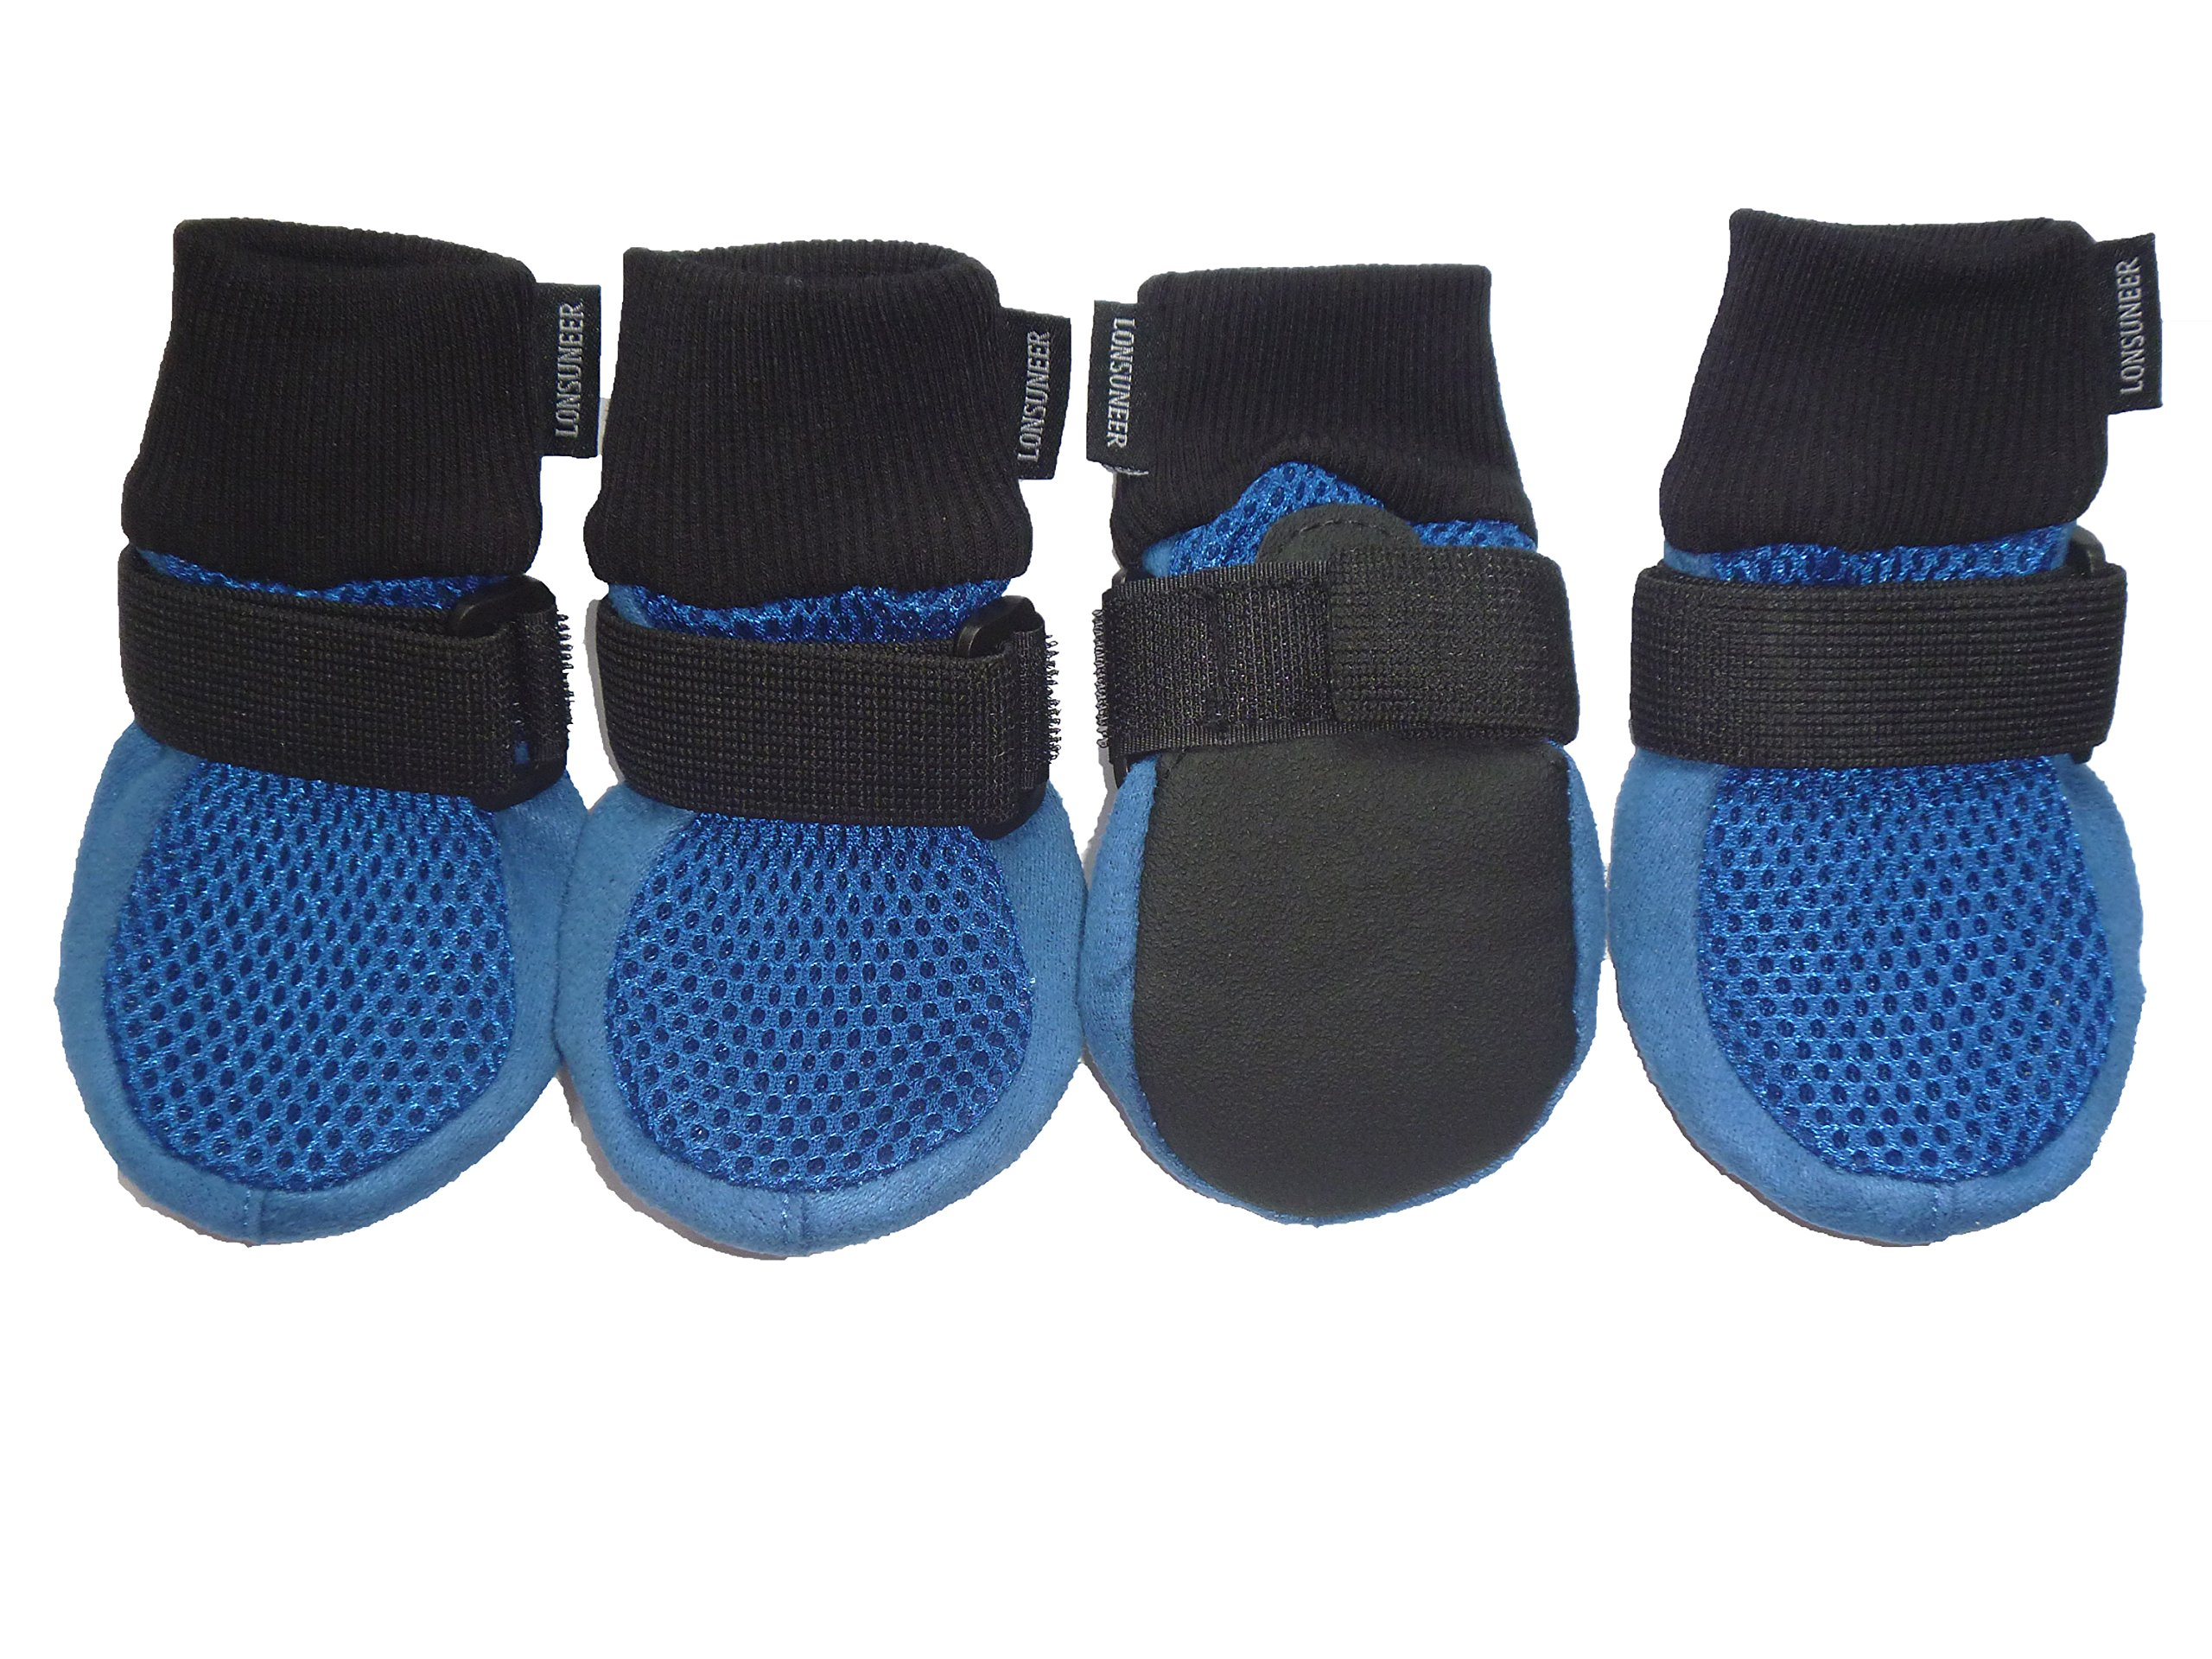 LONSUNEER Dog Boots Breathable and Protect Paws with Soft Nonslip Soles Blue Color Size Medium – Inner Sole Width 2.56 Inch